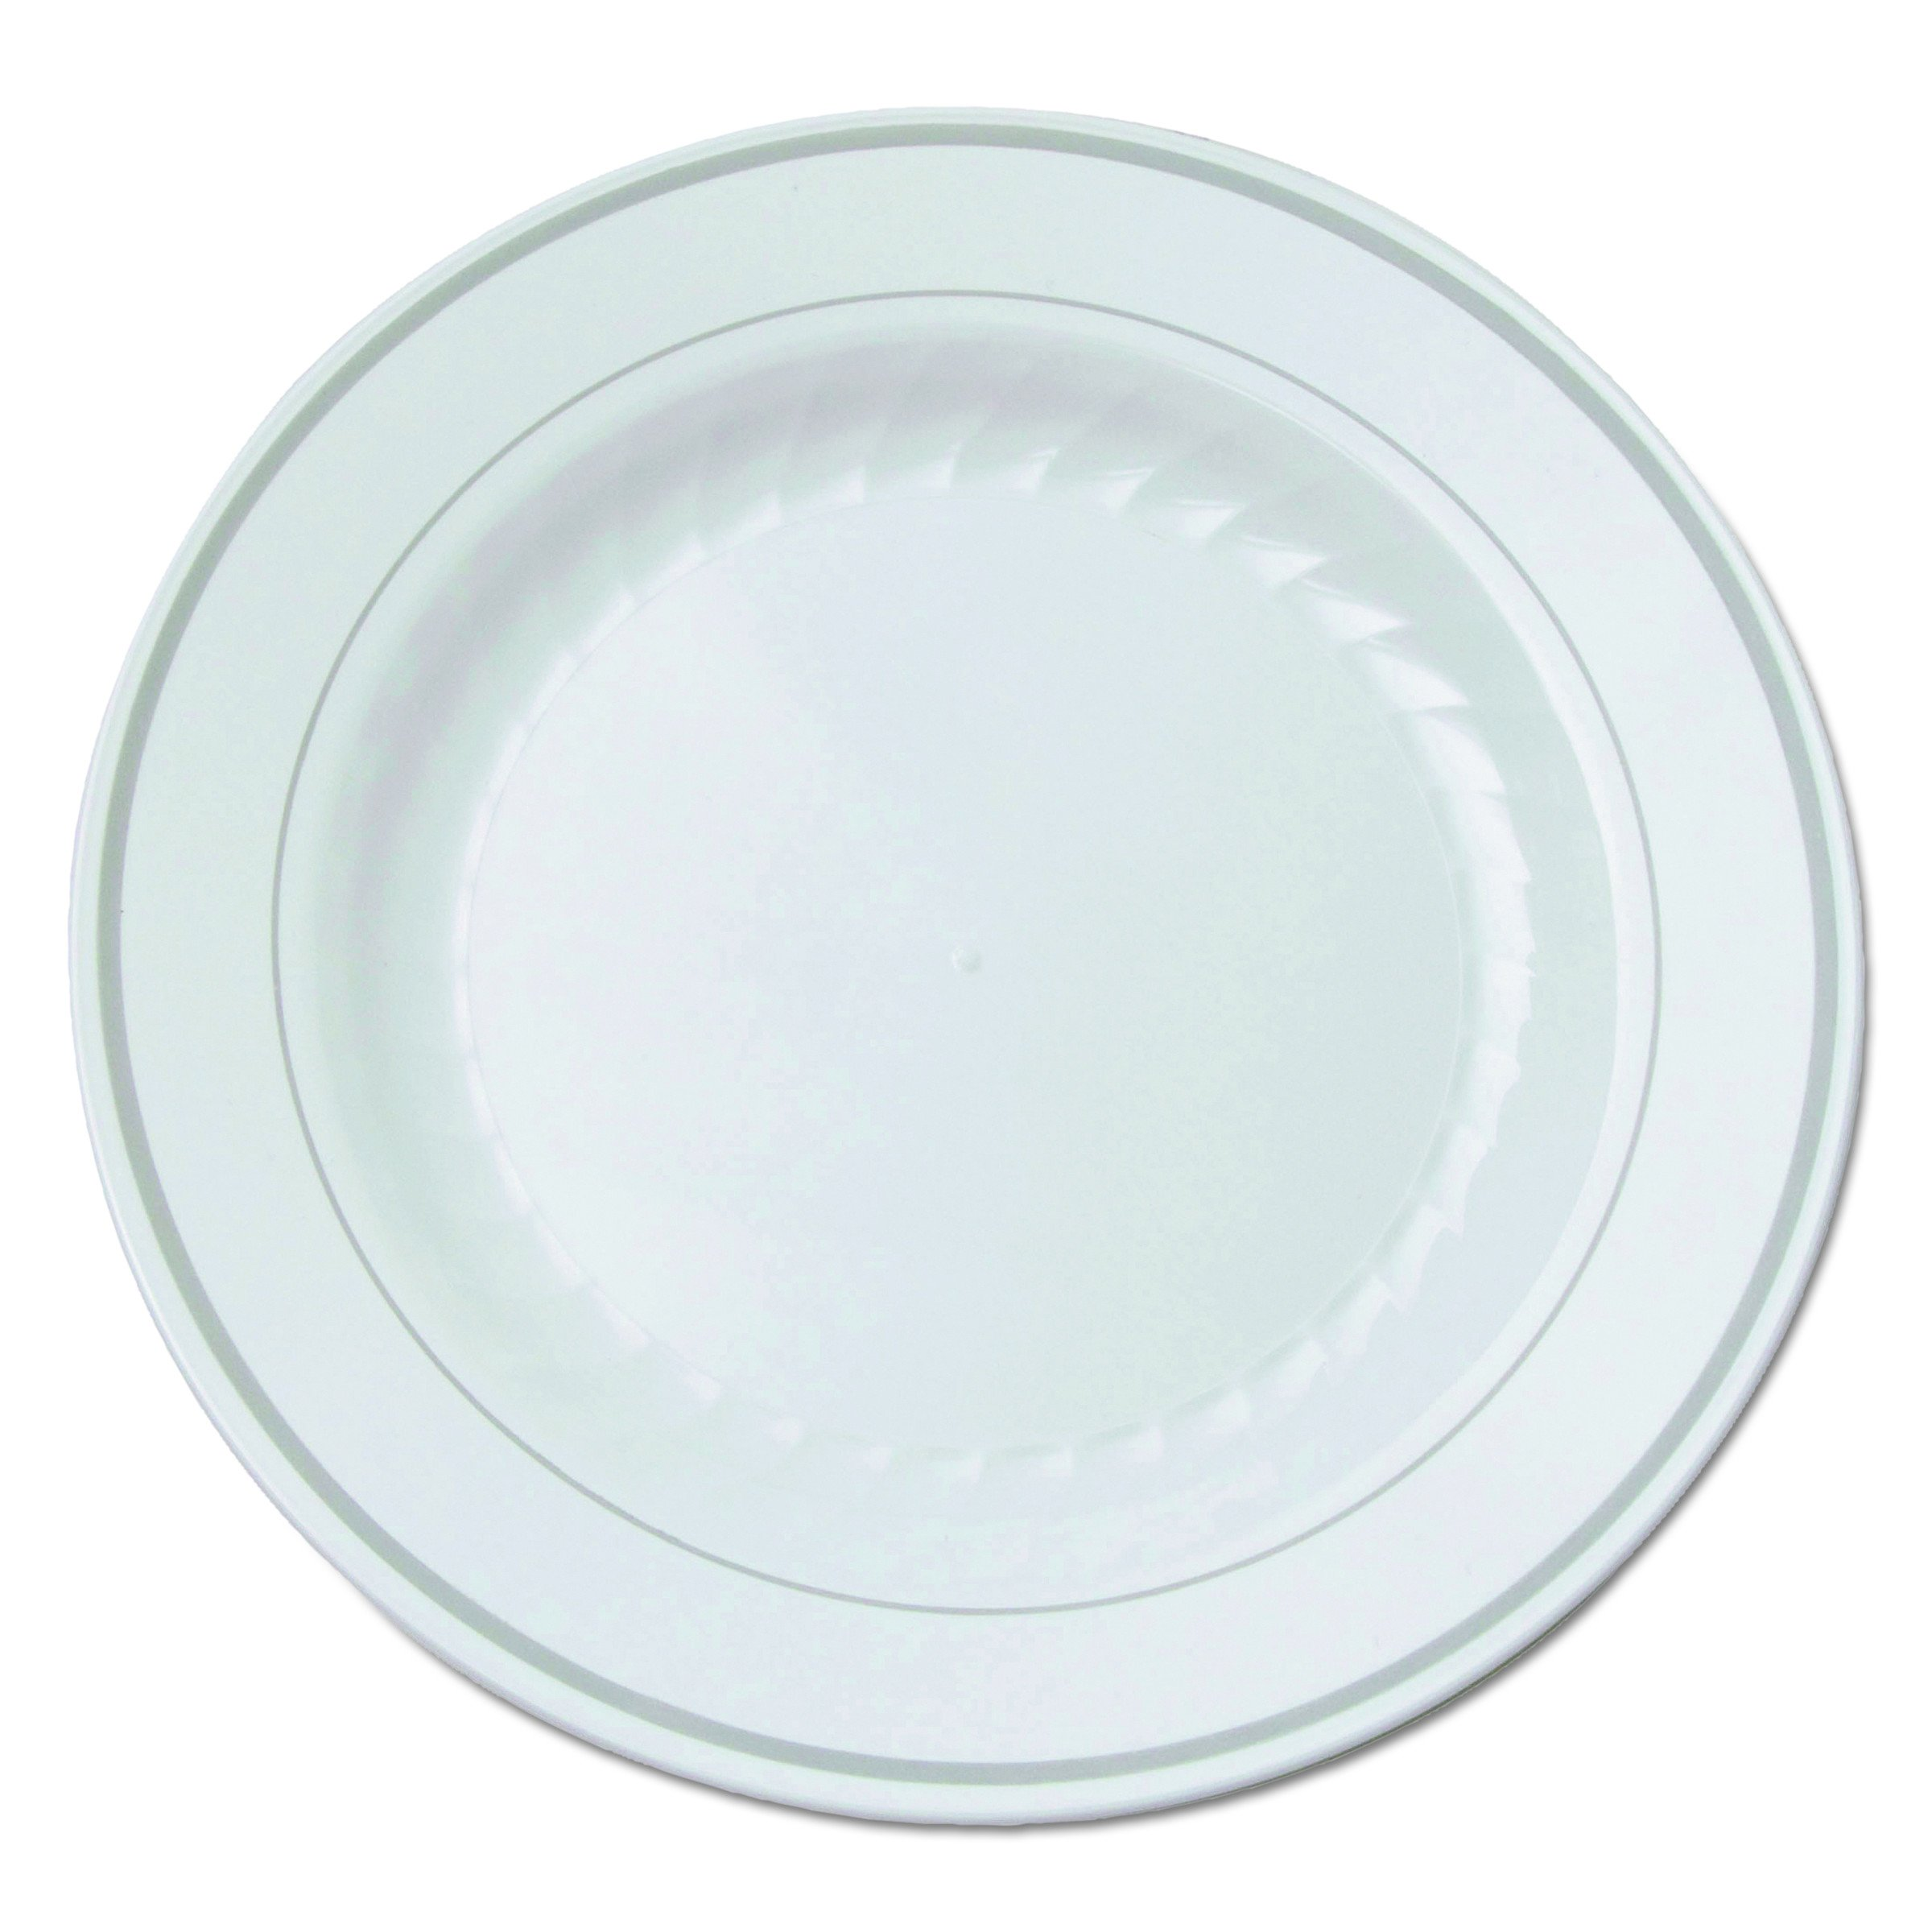 WNA RSM61210WS Masterpiece Plastic Plates, 6 in., White w/Silver Accents, Round (Case of 120)